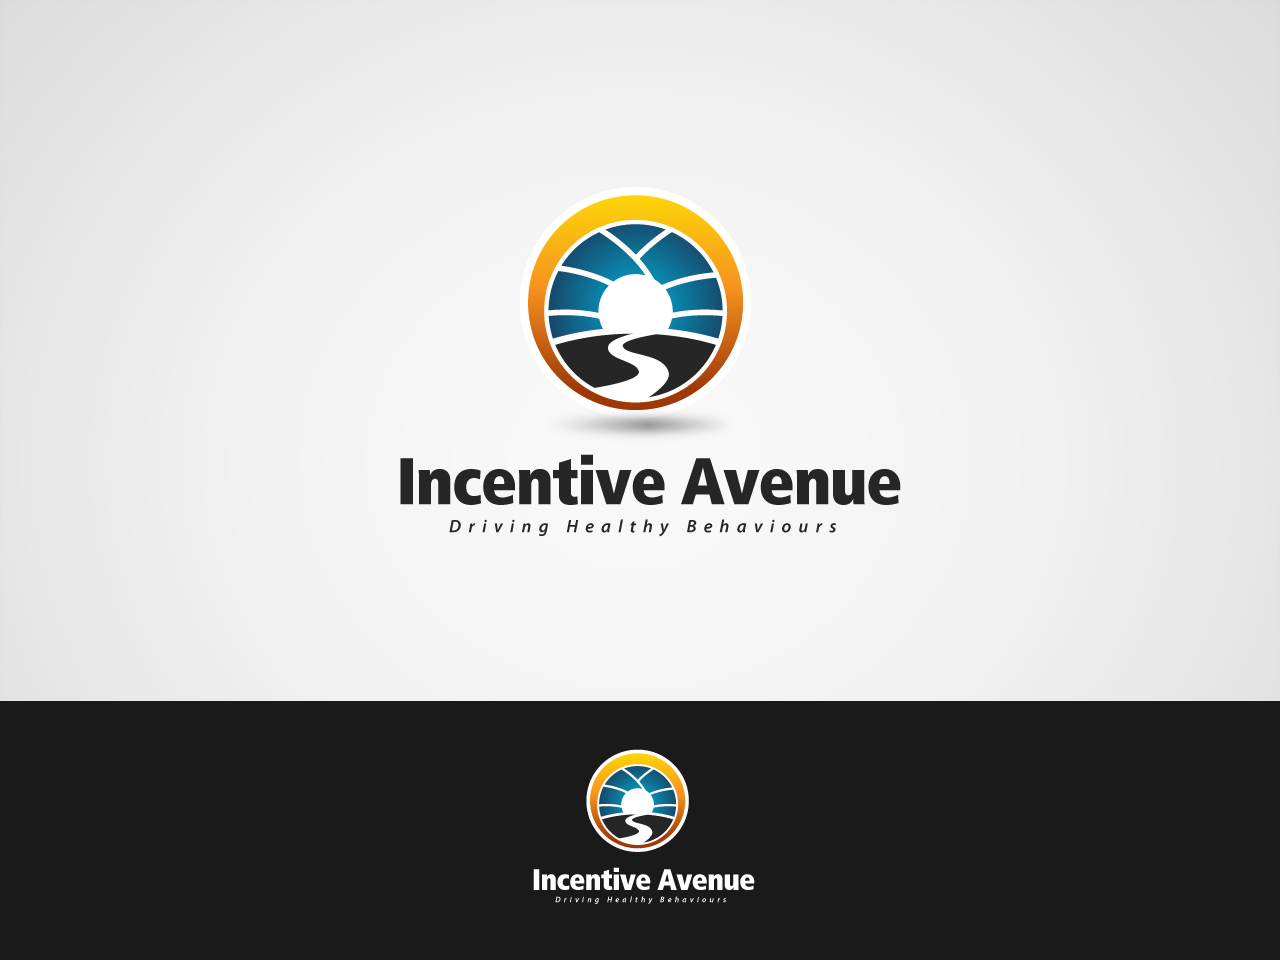 Logo Design by jpbituin - Entry No. 59 in the Logo Design Contest New Logo Design for Incentive Avenue.